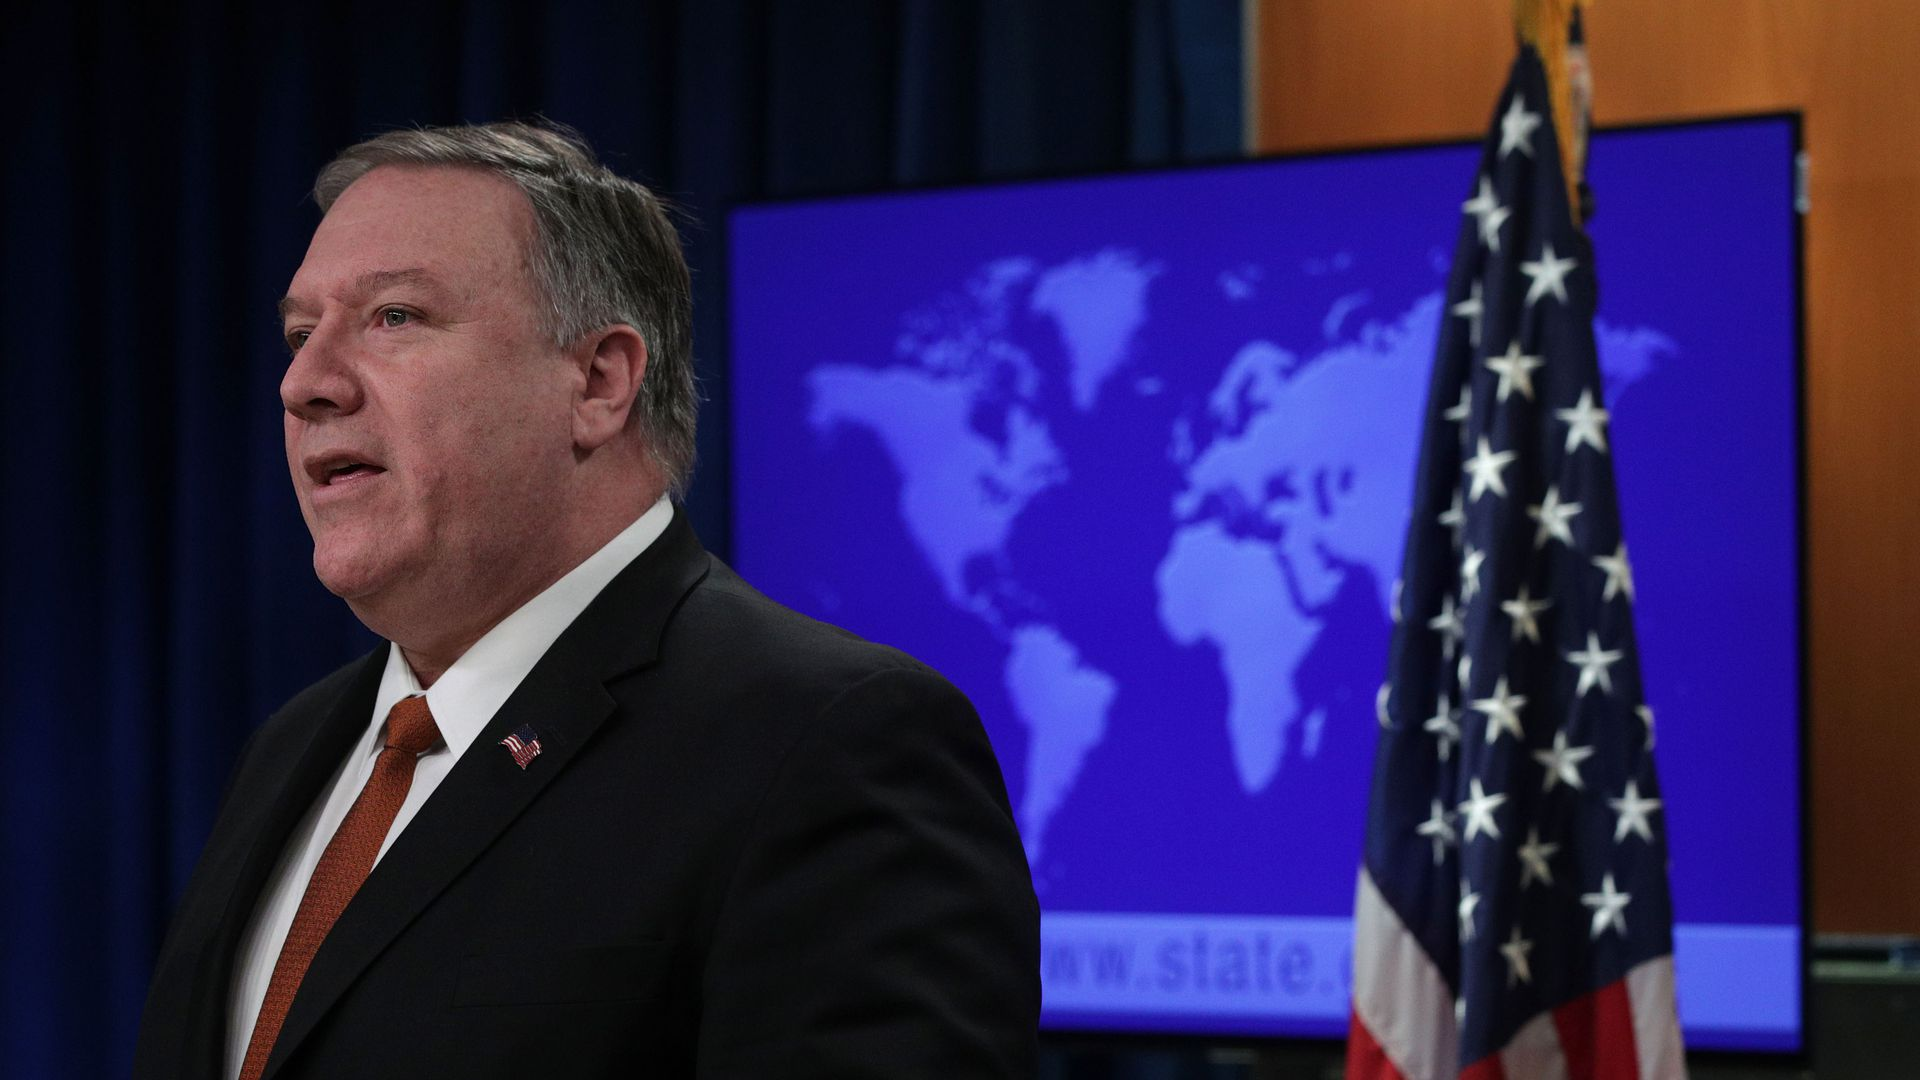 Mike Pompeo is pictured standing next to the American flag.